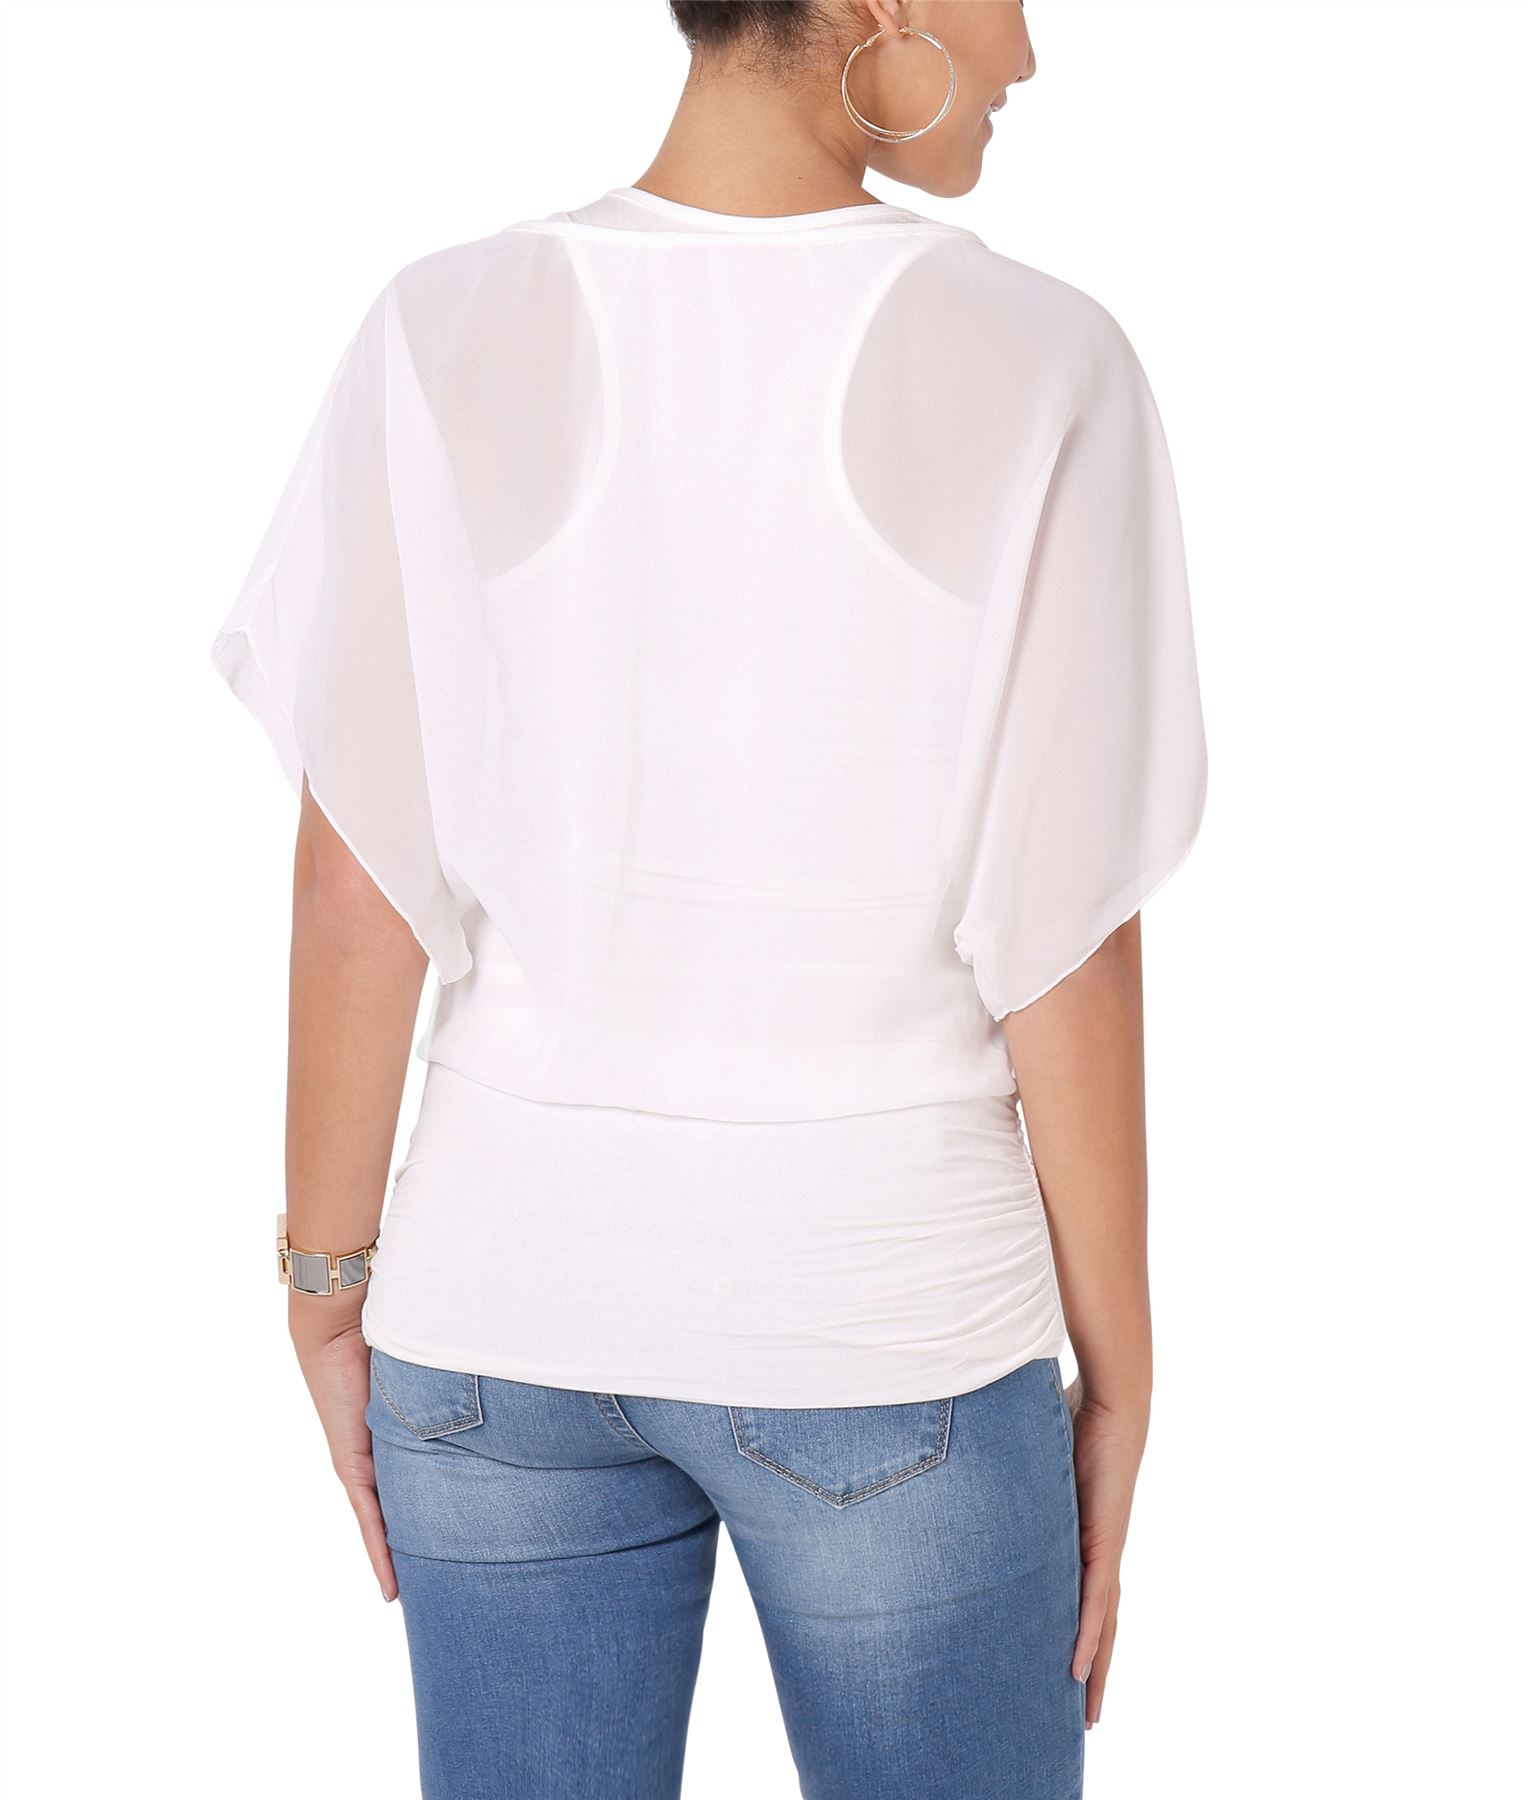 Womens-Scoop-Neck-Blouse-Baggy-Batwing-T-Shirt-Top-Ladies-Oversized-Chiffon-2in1 thumbnail 13